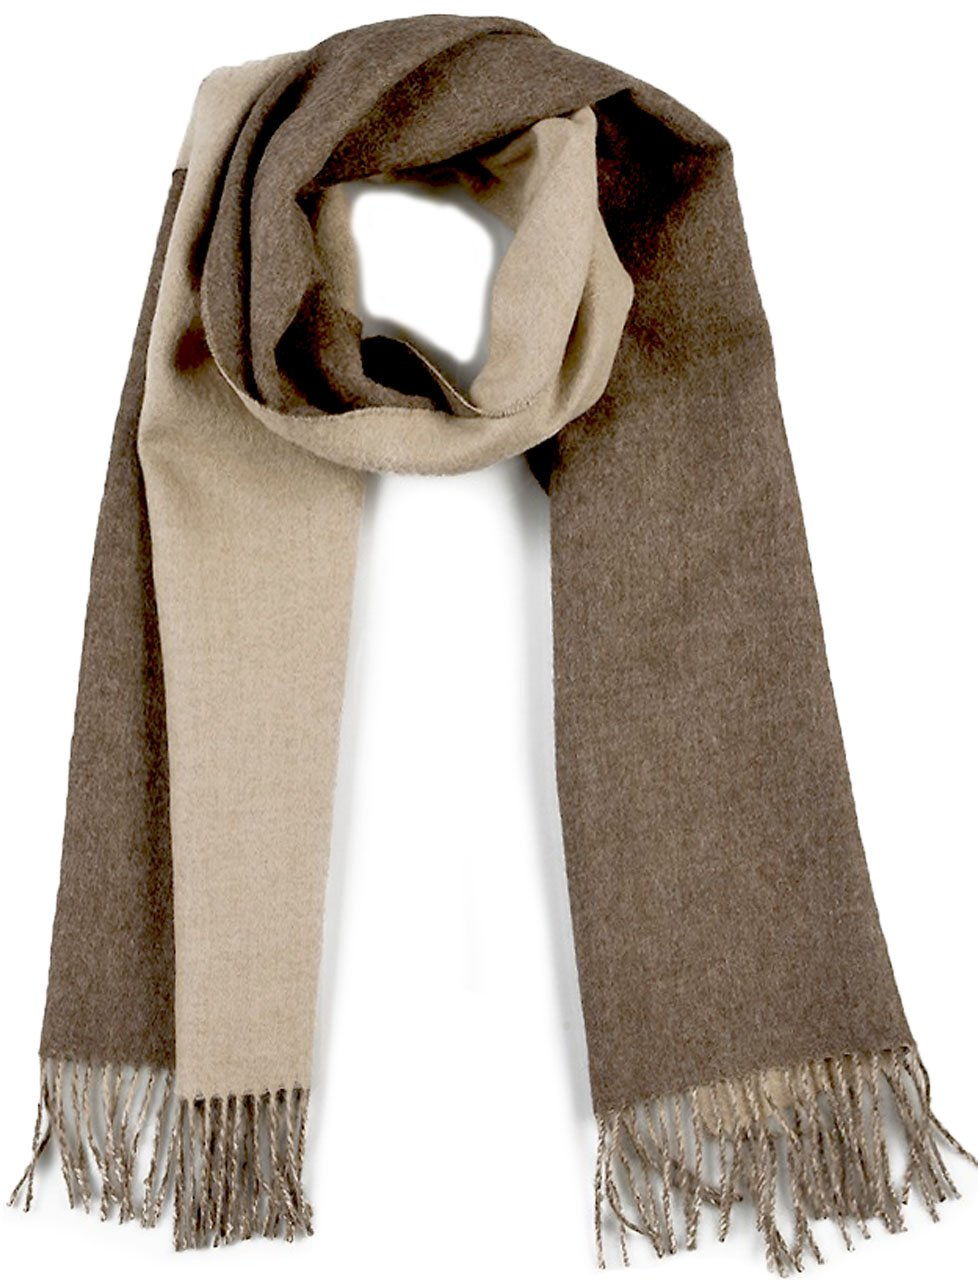 100% Pure Baby Alpaca Scarf - Contrast Scarf (Heather Linen) by Incredible Natural Creations from Alpaca - INCA Brands